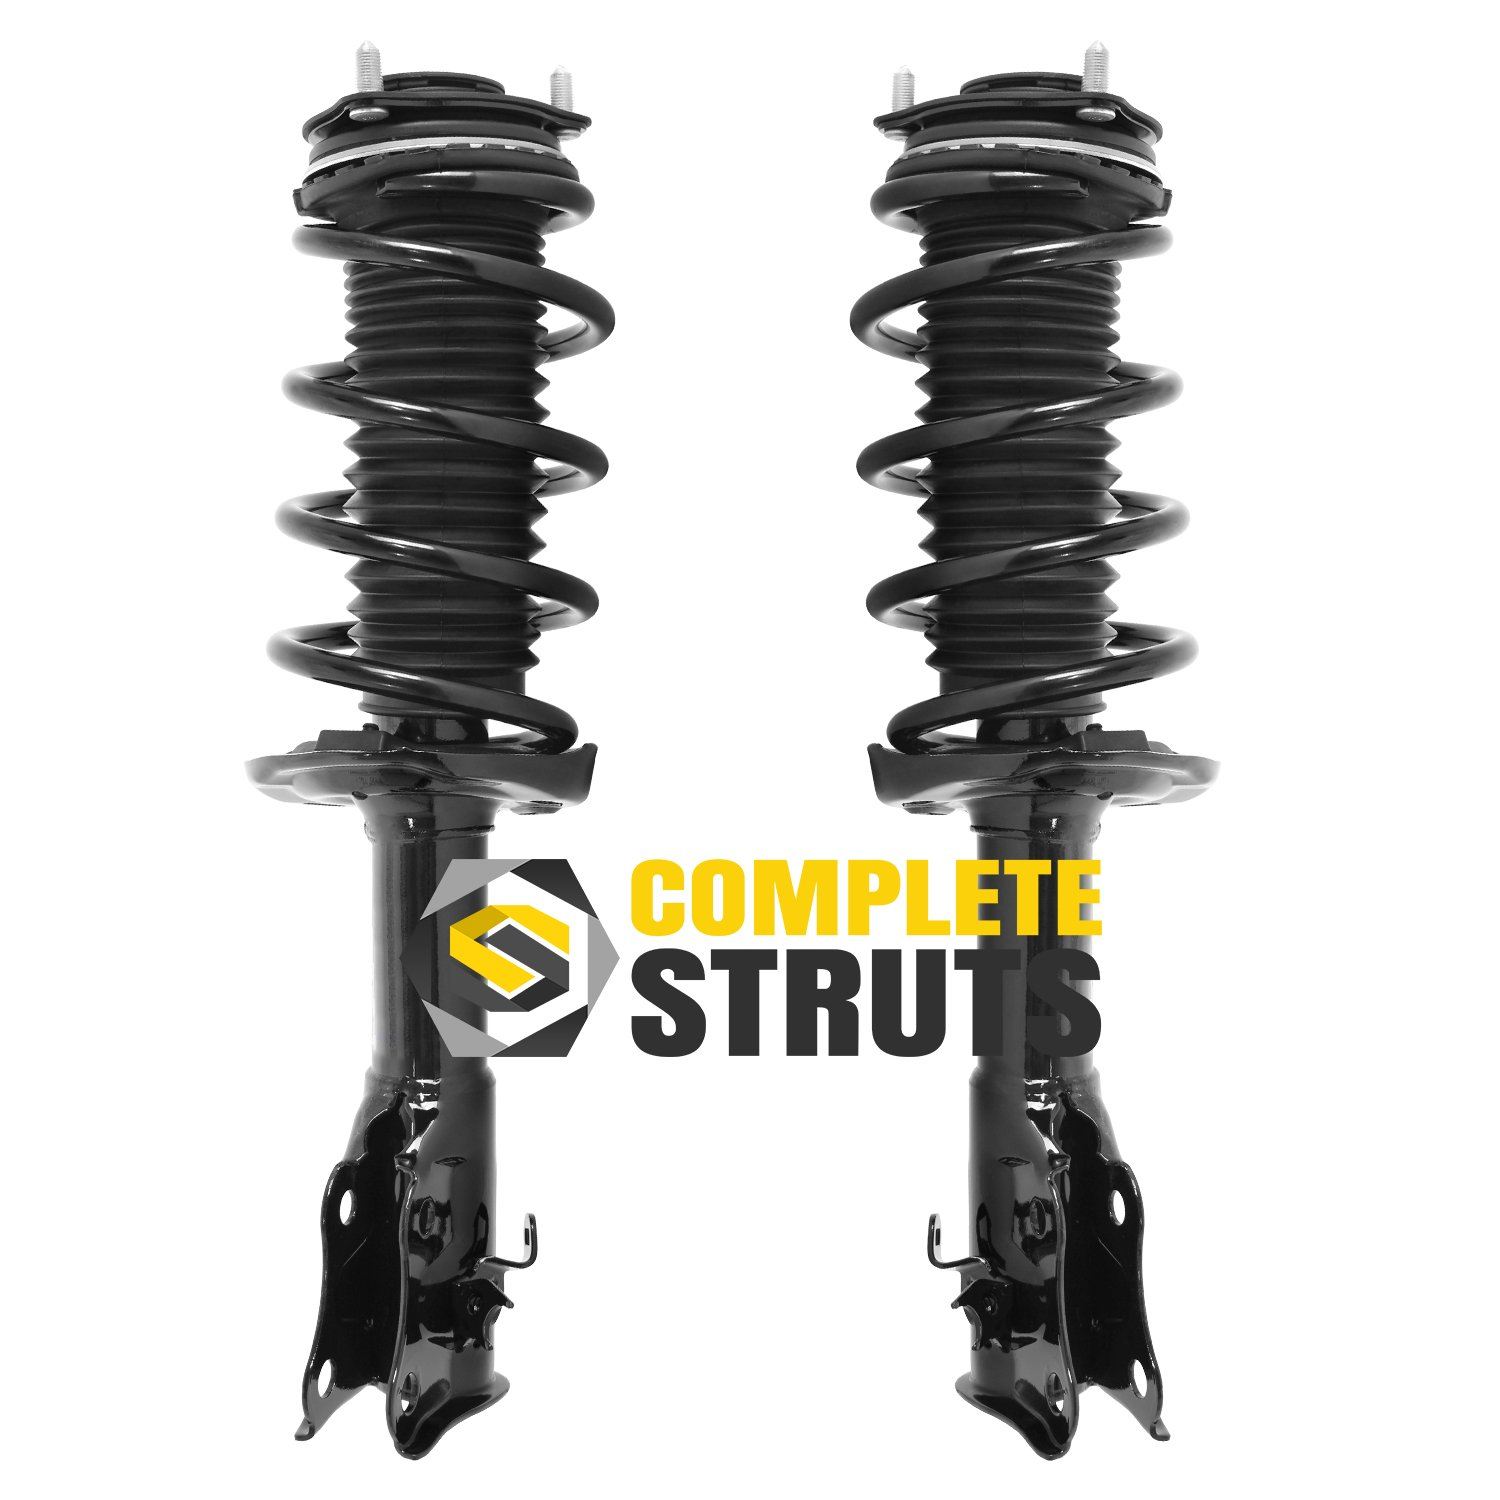 Pair Front Quick Complete Struts /& Coil Spring Assemblies Compatible with 2006-2011 Honda Civic Coupe